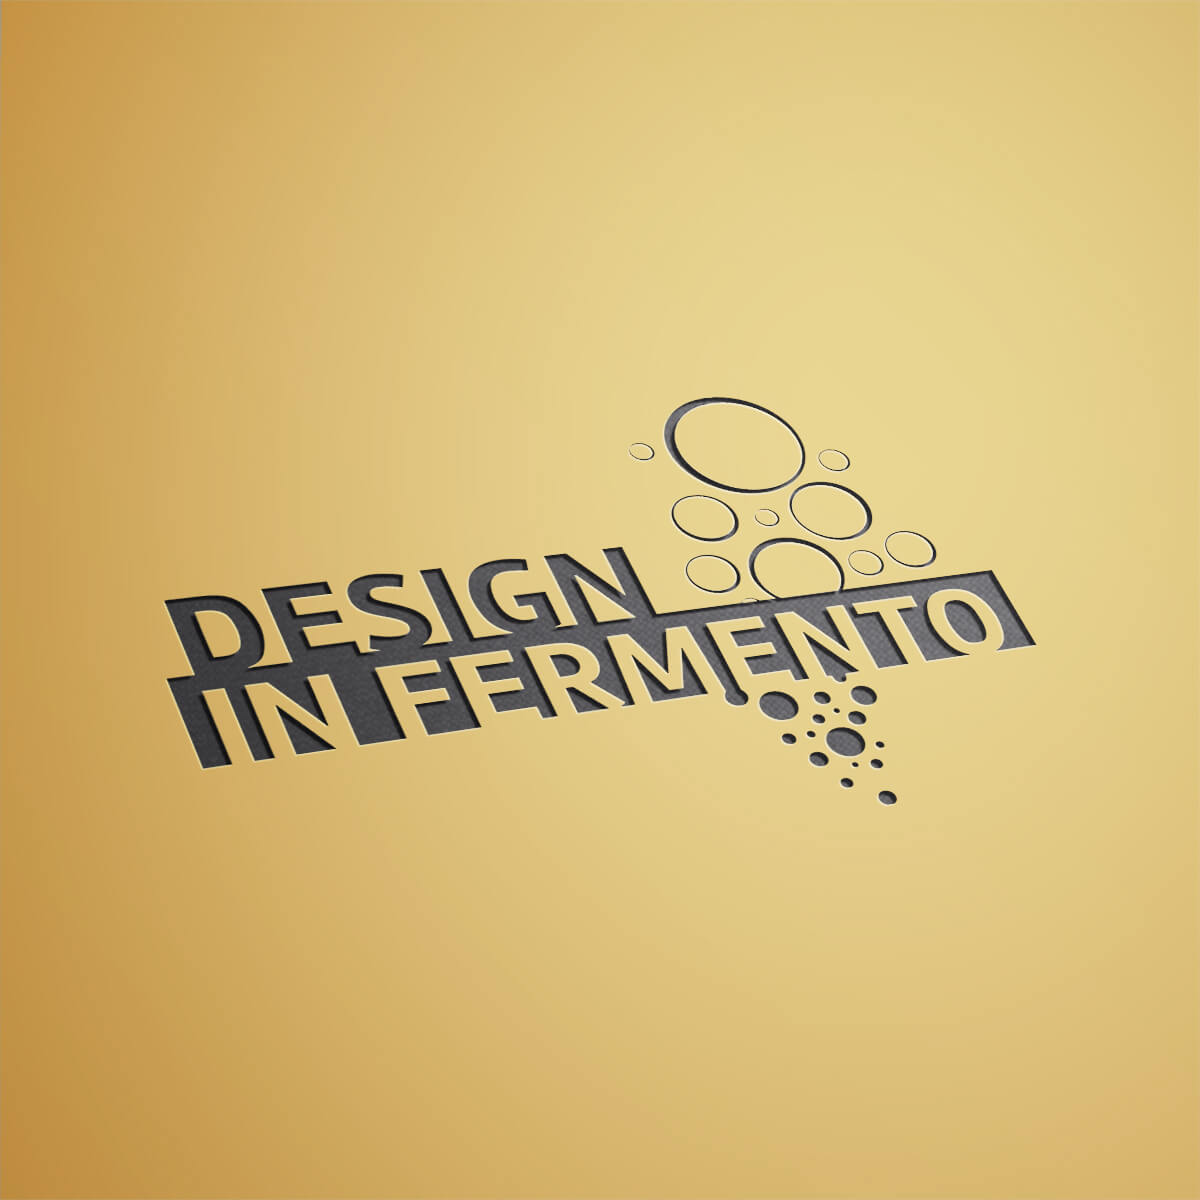 Decor - evento - Design in fermento